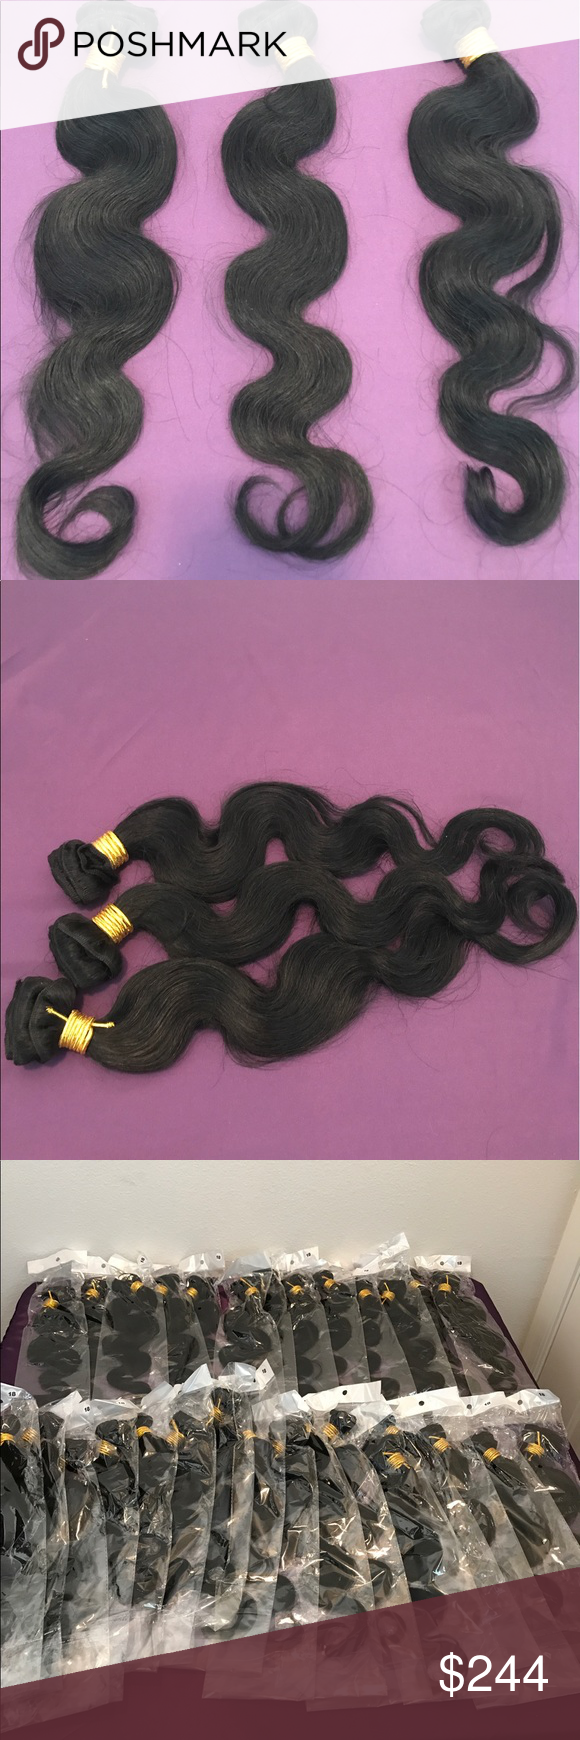 """18 MALAYSIAN REMY BODY WAVE HUMAN HAIR BUNDLE BLACK, CAN BE DYED, NO TANGLE, NO SHED, SOFT AND SILKY, 200 DEGREES WHEN FLAT IRONING OR CURLING HAIR.. 3 BUNDLES IN BUNDLE Accessories Hair Accessories"